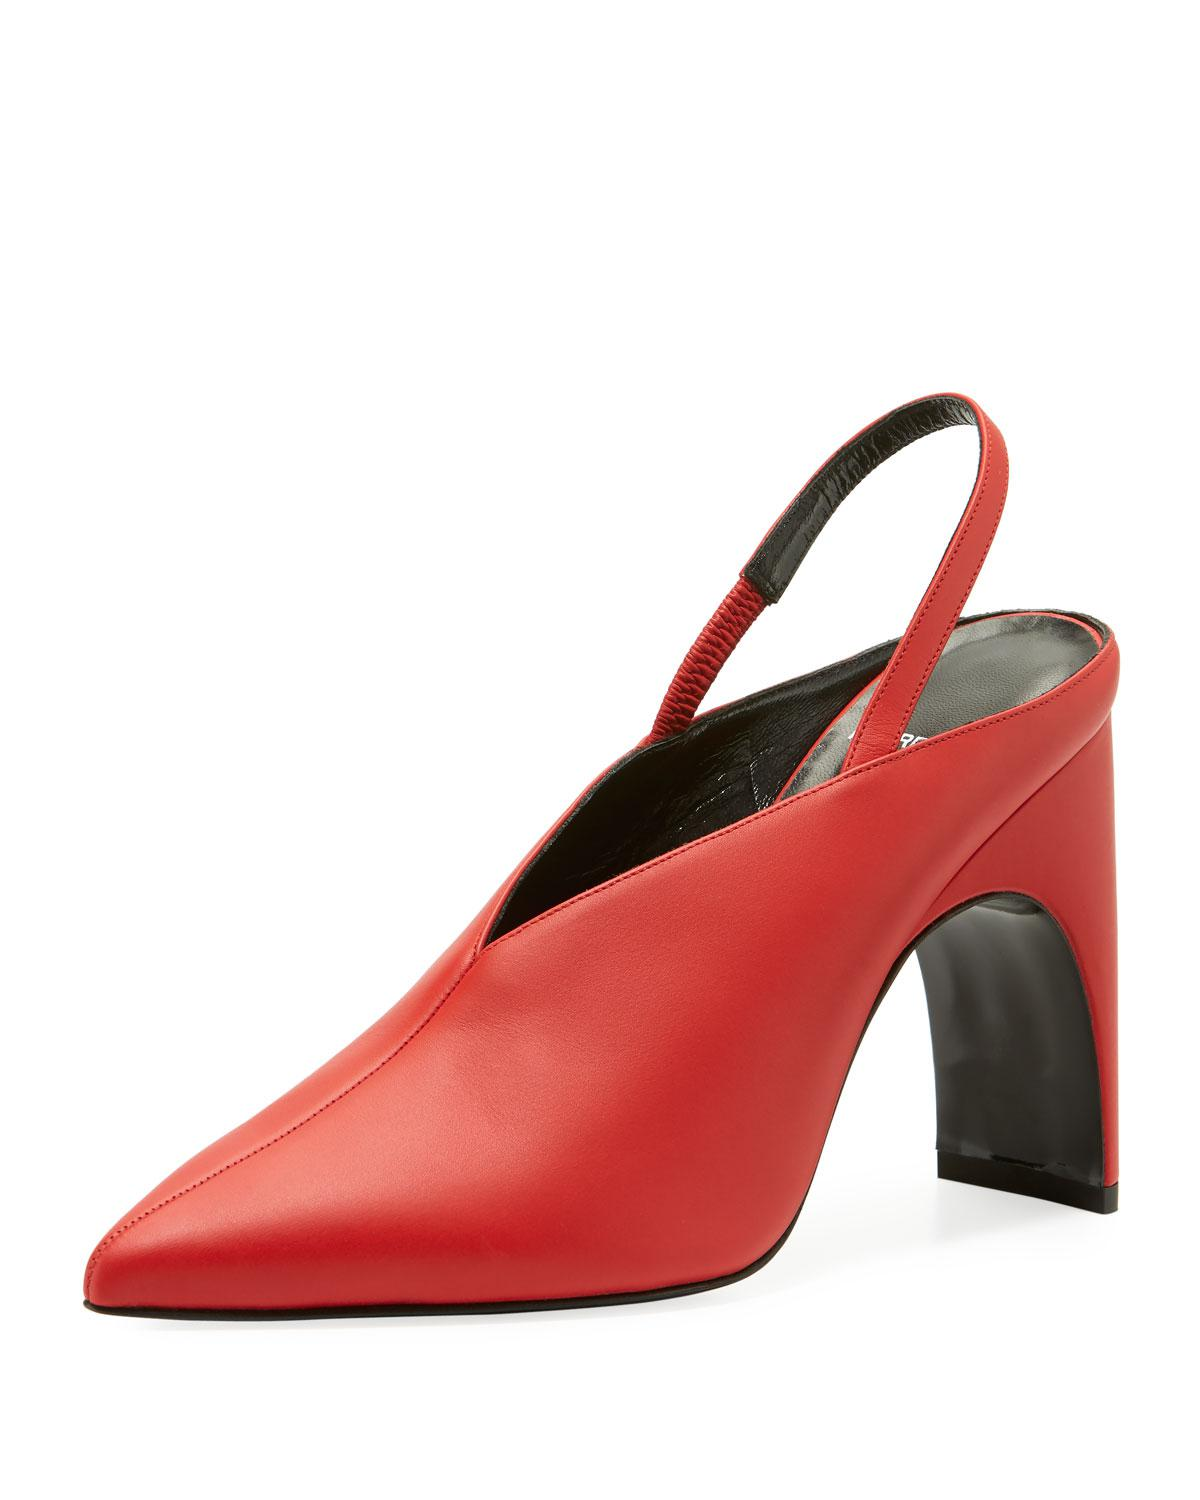 90e69adc046 Lyst - Pierre Hardy Jessie Leather Slingback Pumps in Red - Save 61%